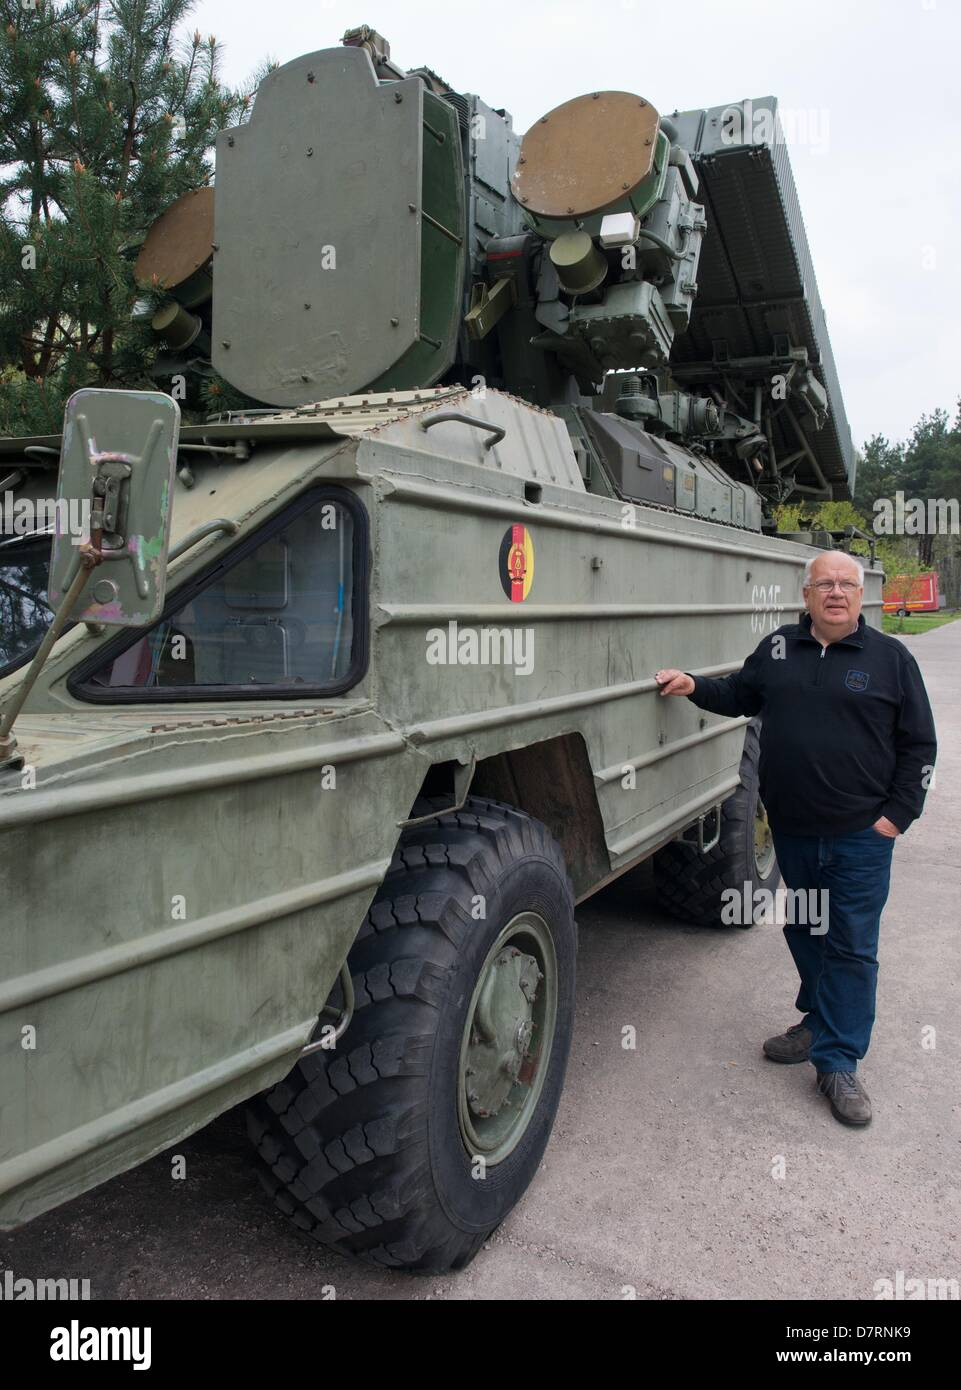 Director of the Aviation Museum Finowfurt e.V., Klaus-Peter Kobbe, stands next to a type Osa-AK air defence missile - Stock Image